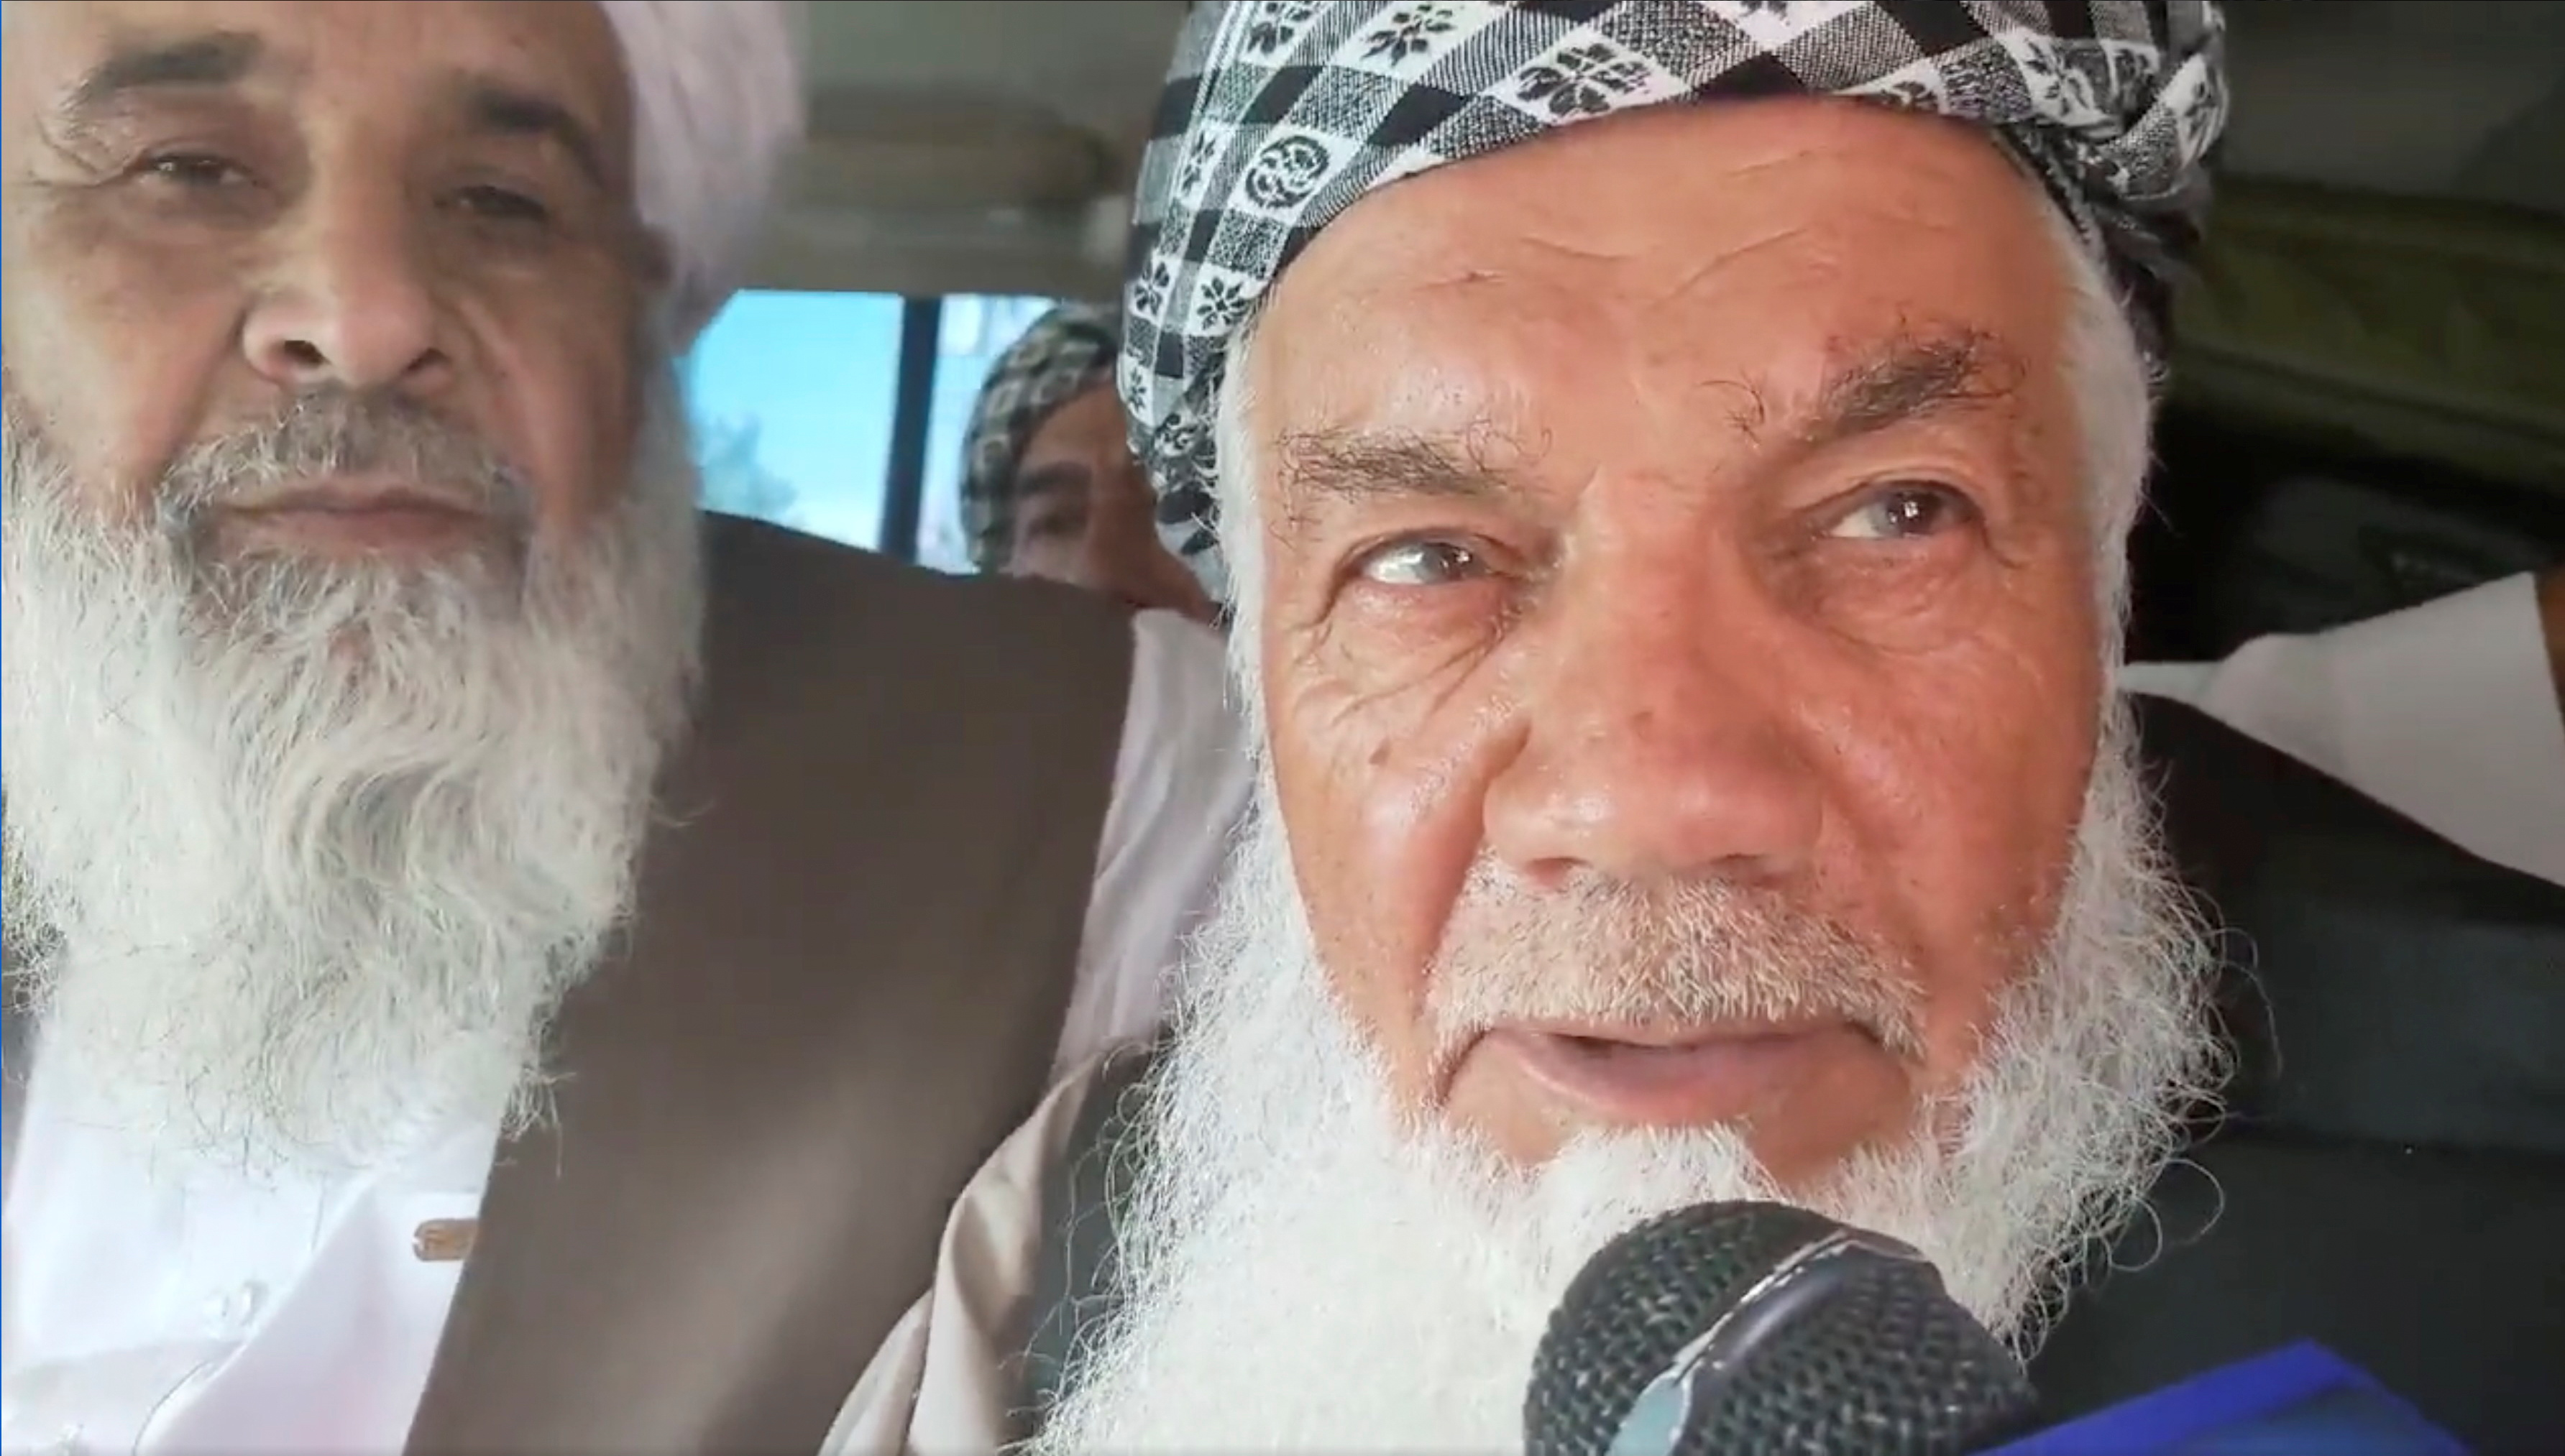 Ismail Khan, a veteran local commander leading militia resistance in Herat, Afghanistan, speaks to a Taliban media arm while in their custody, in this screen grab taken from an undated video from social media uploaded on August 13, 2021. TALIBAN HANDOUT/via REUTERS